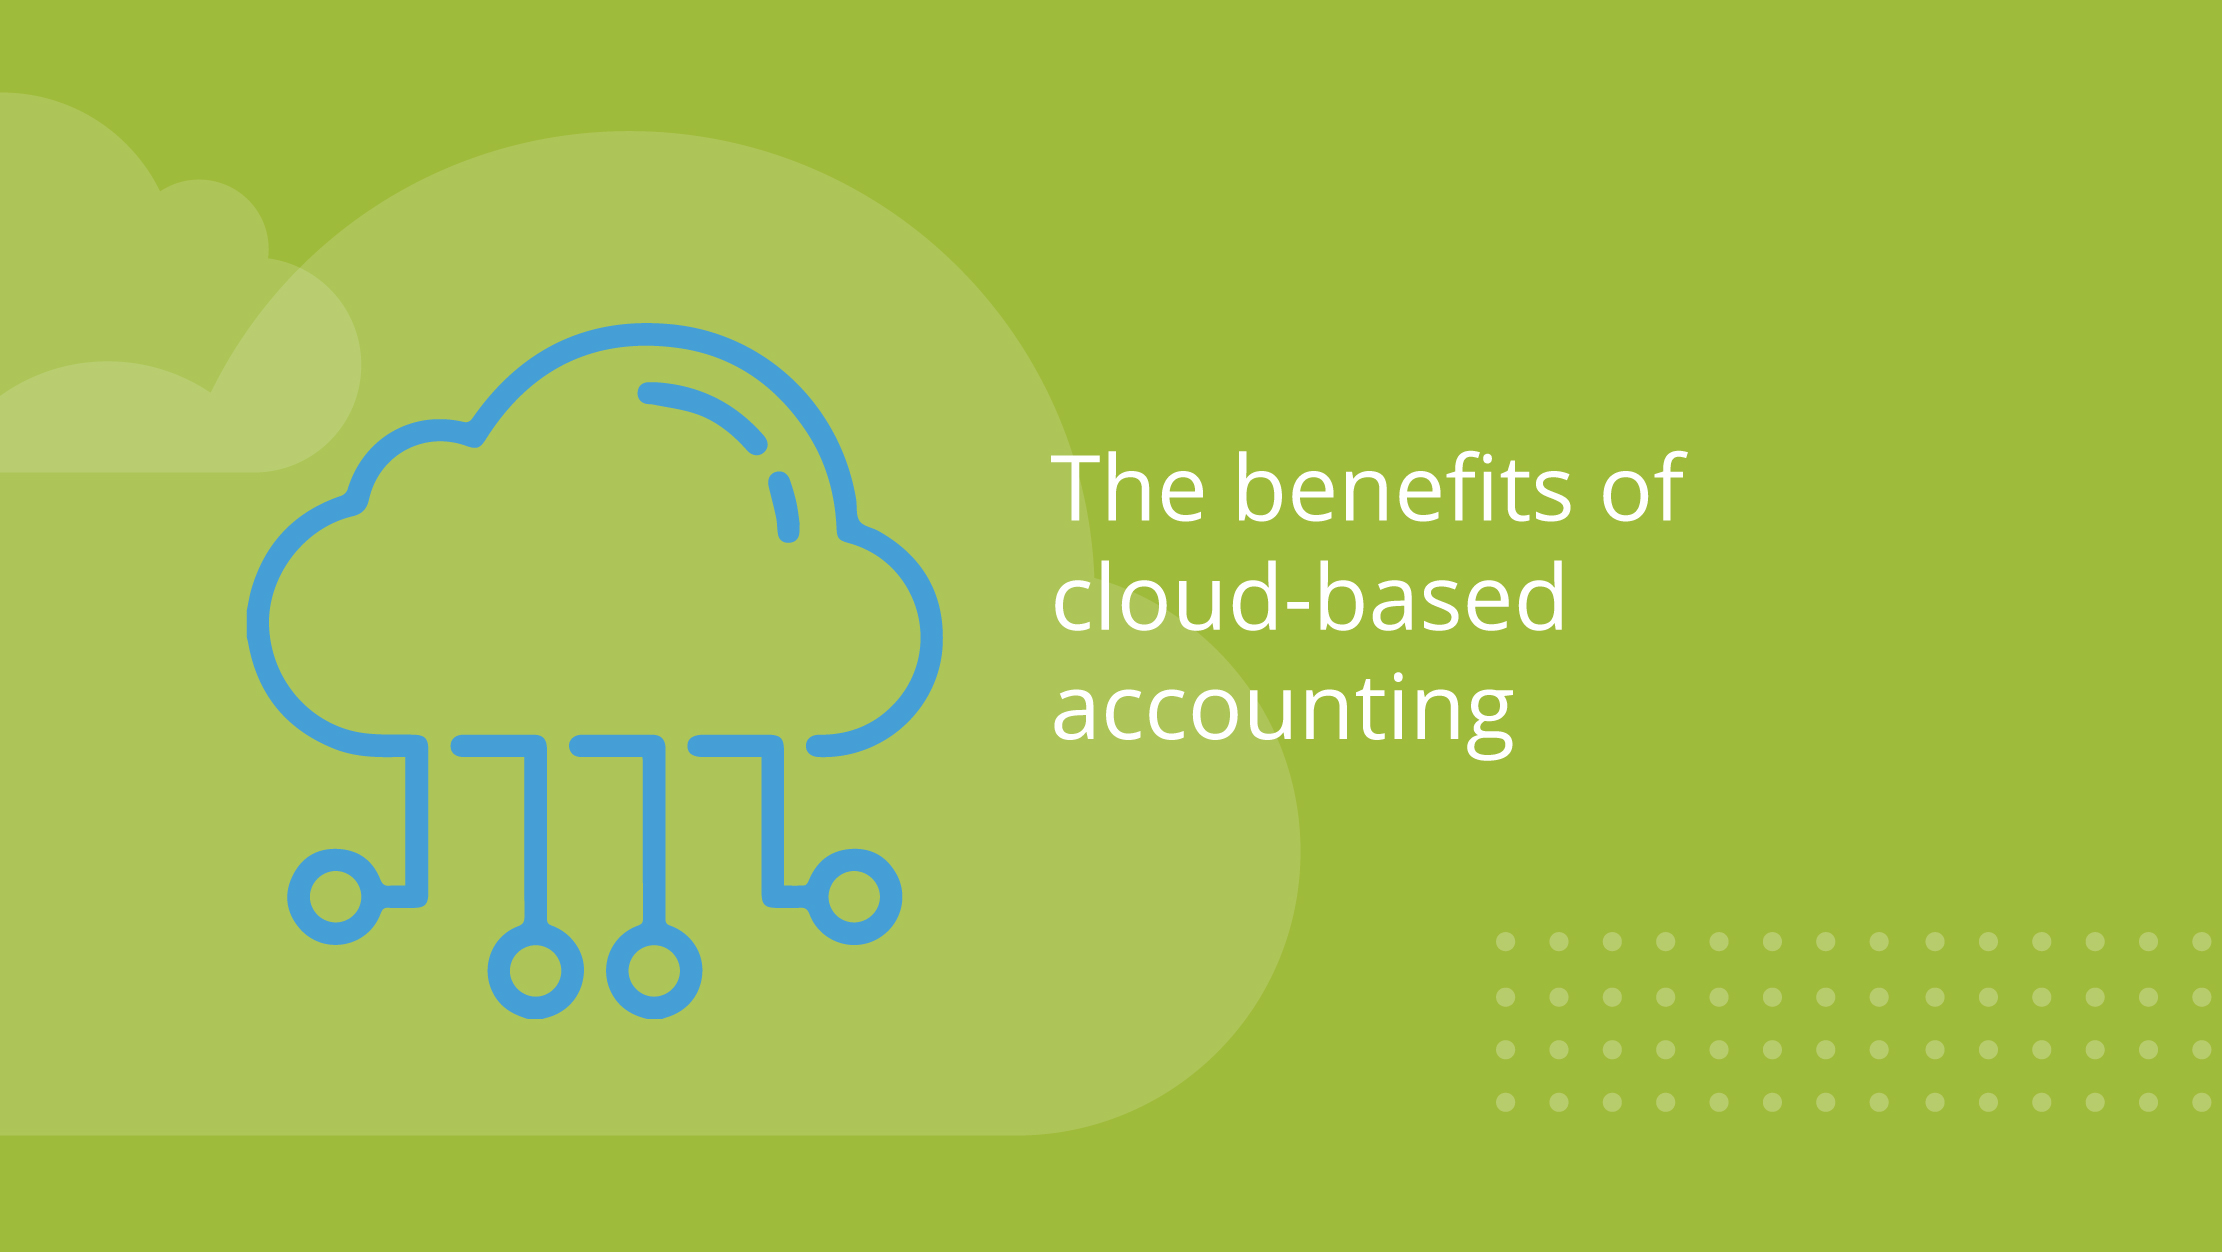 The benefits of cloud-based accounting